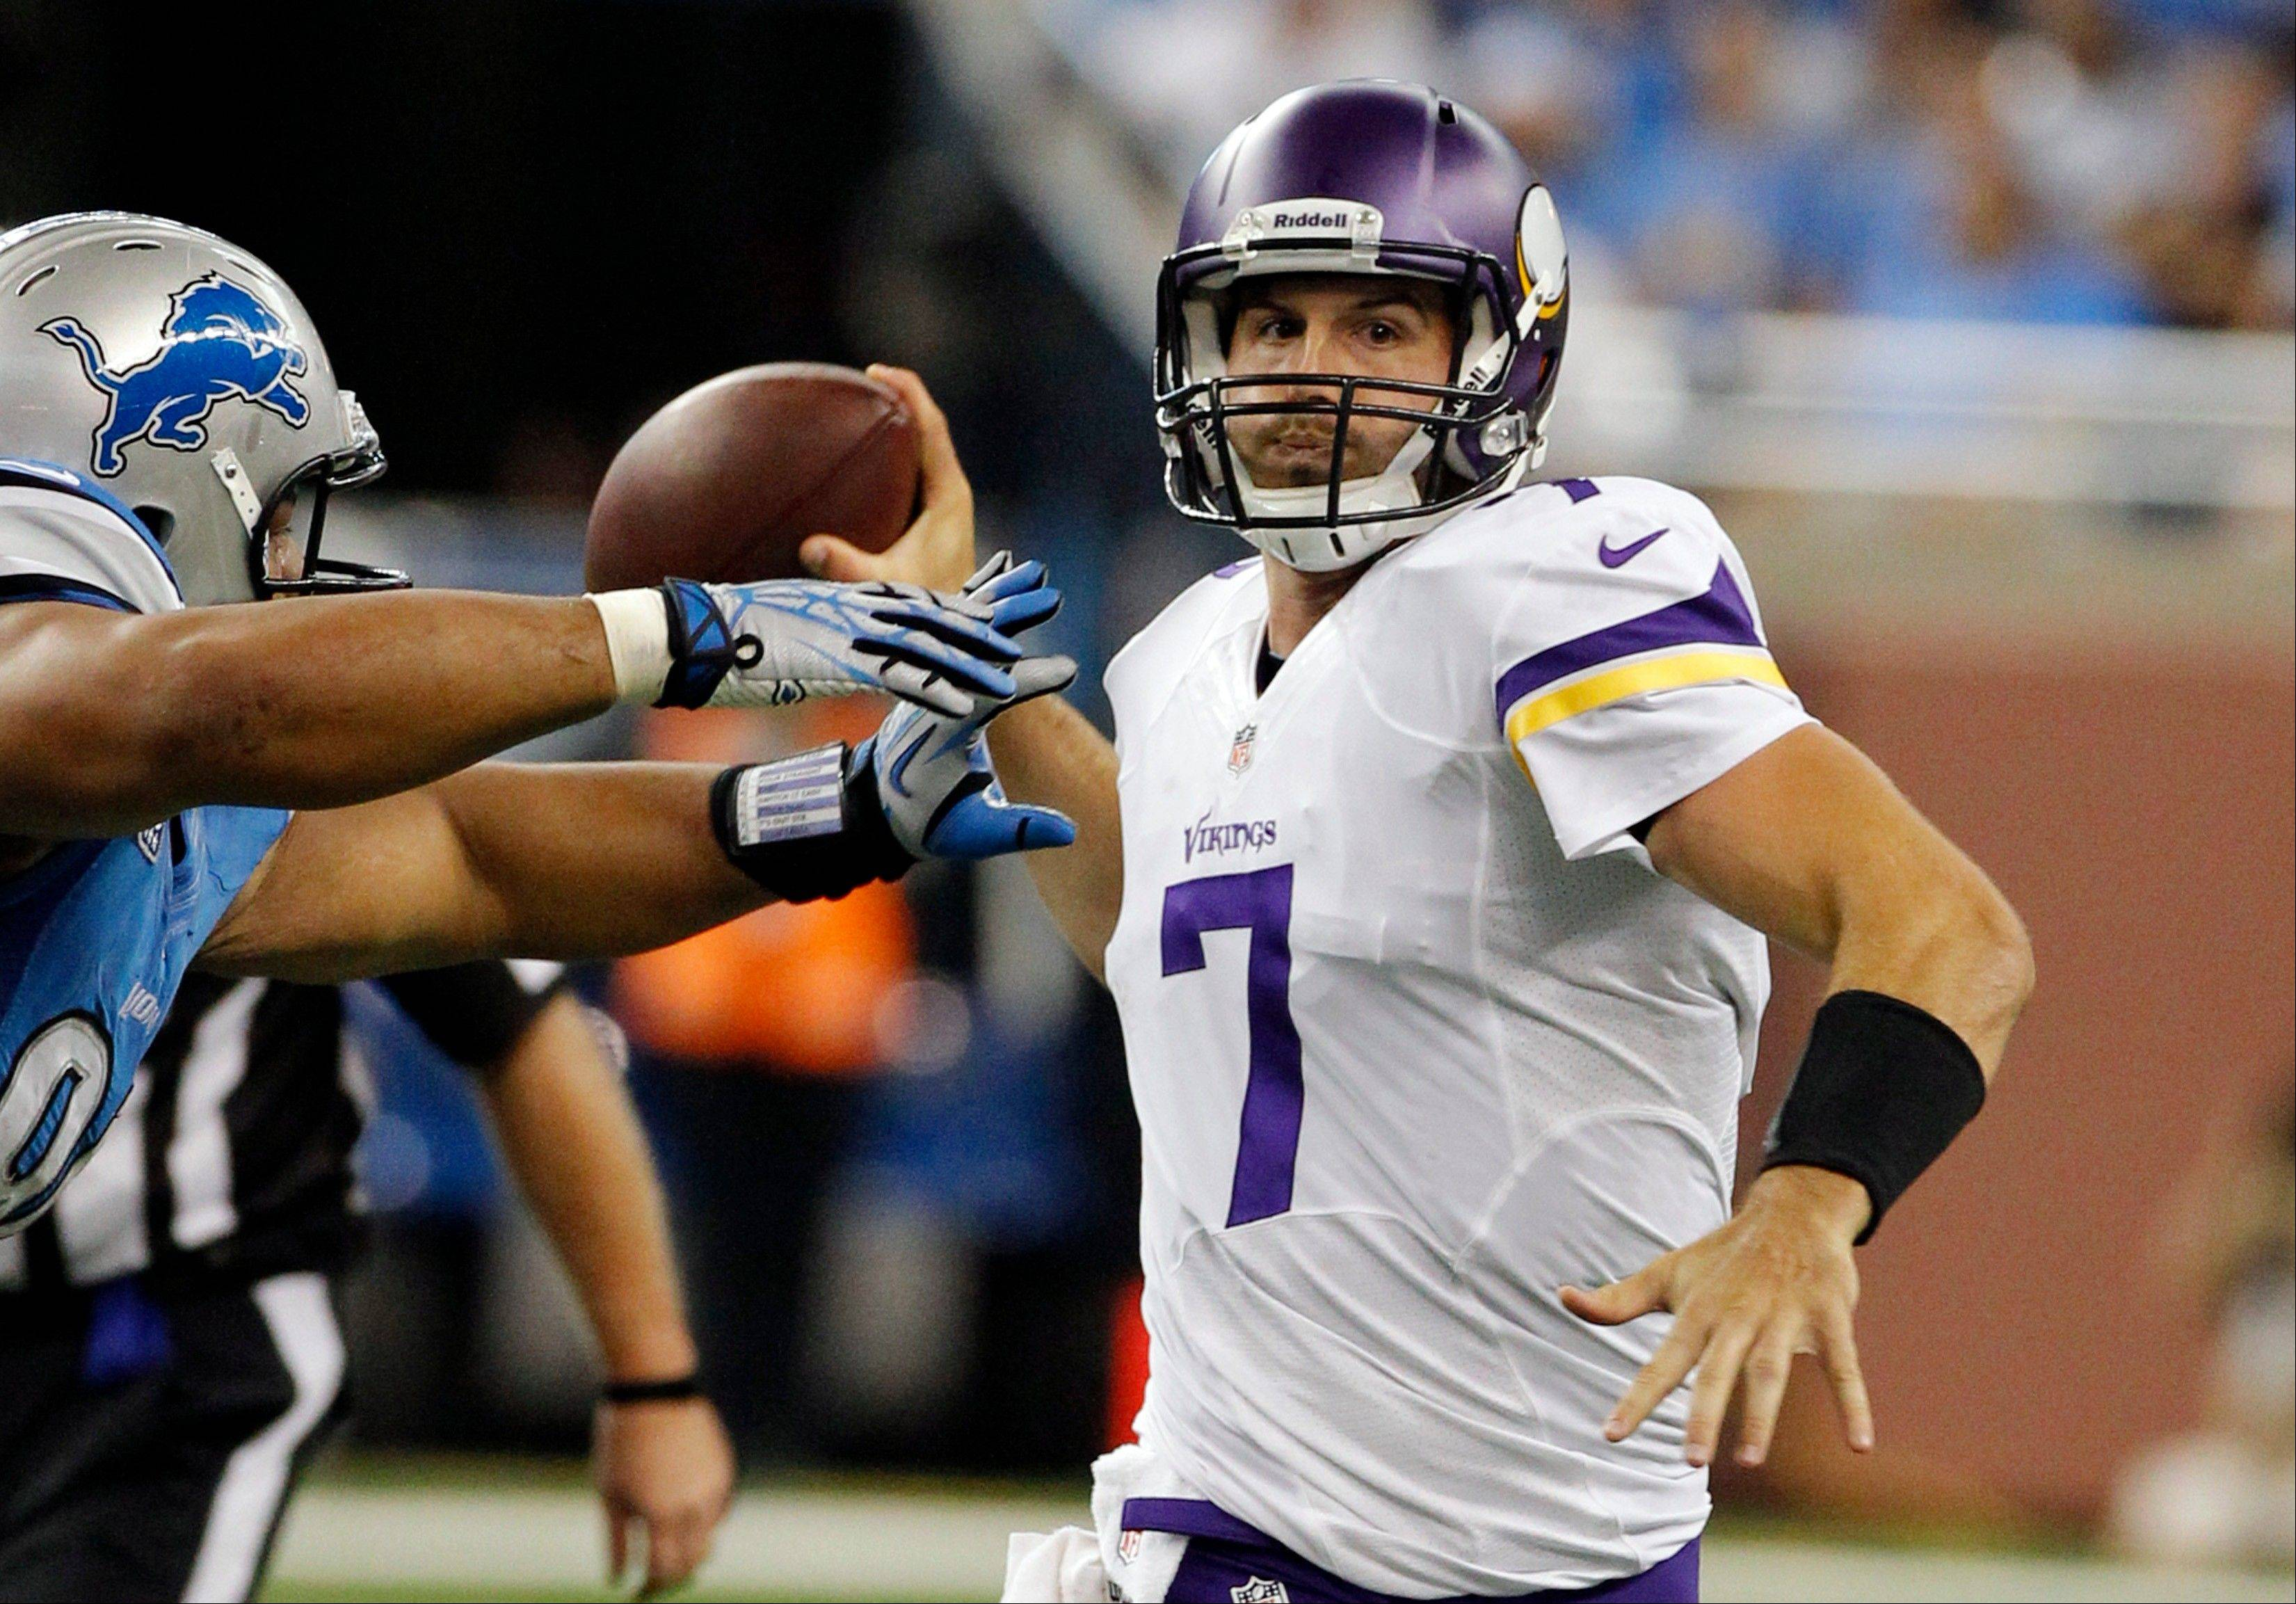 Minnesota Vikings quarterback Christian Ponder (7) is pressured by Detroit Lions defensive tackle Ndamukong Suh Sunday during the third quarter at Ford Field in Detroit.